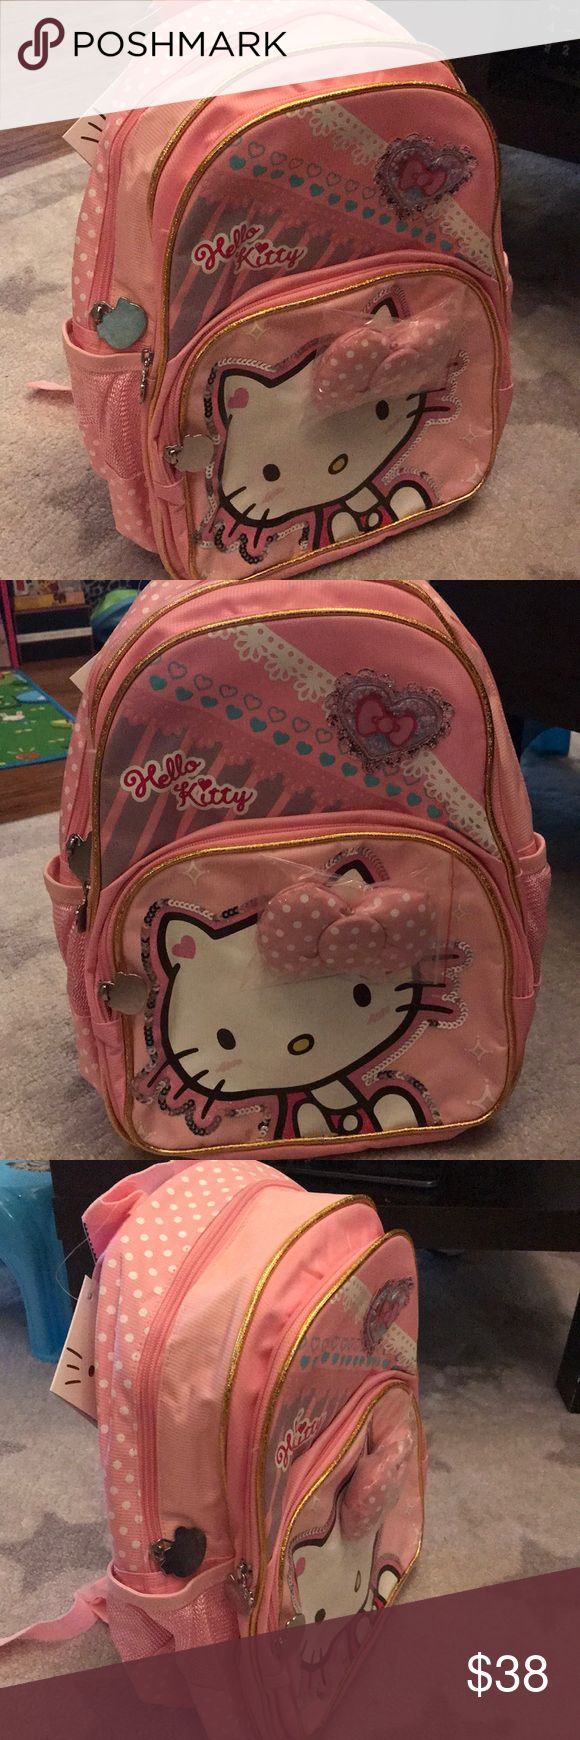 Hello kitty backpack Brand new Hello kitty backpacks for 6-10 year old girls Hello Kitty Accessories Bags